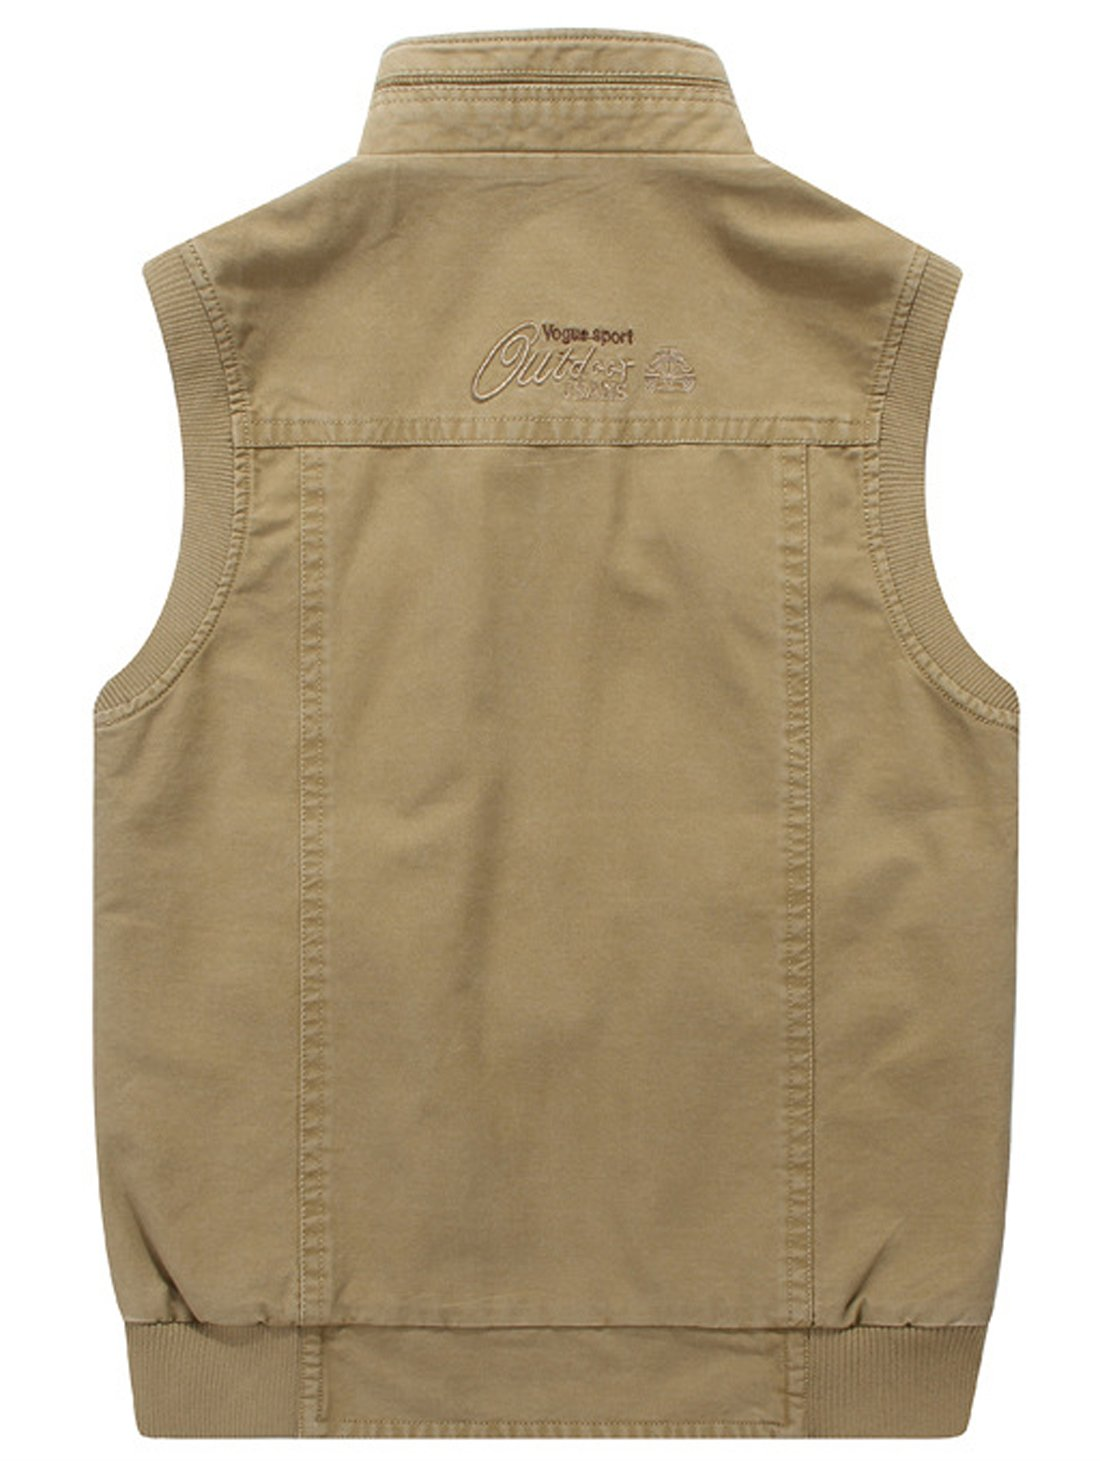 Gihuo Men's Reversible Cotton Leisure Outdoor Pockets Fish Photo Journalist Vest (L, Khaki) by Gihuo (Image #4)